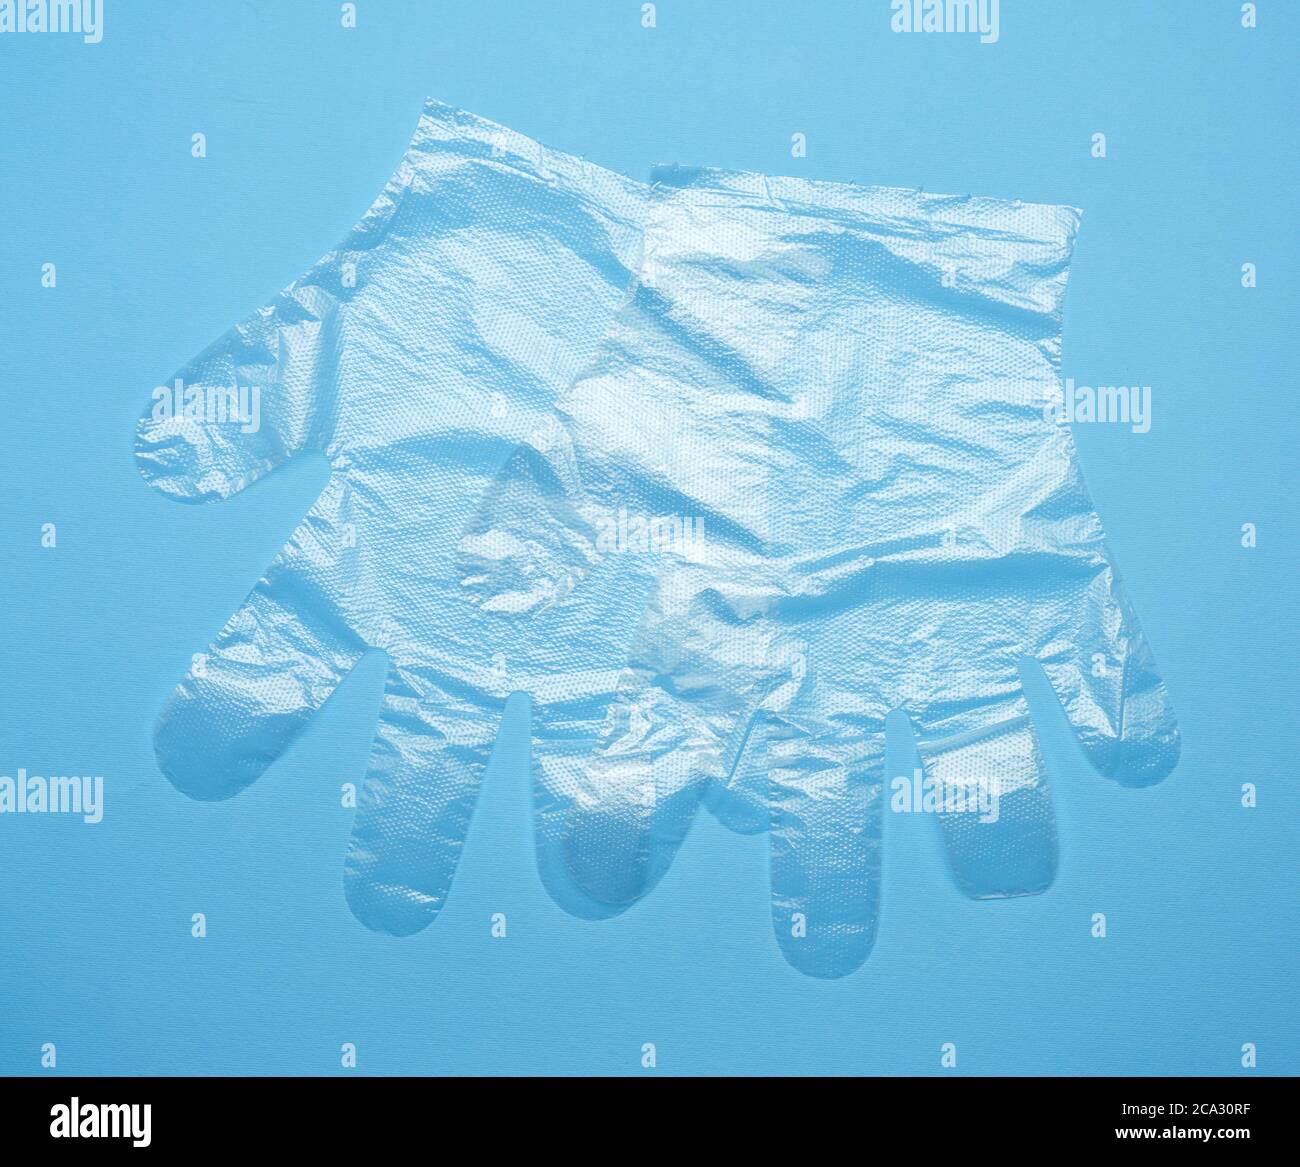 pair of disposable polyethylene gloves on a blue background, top view, flat lay. Stock Photo